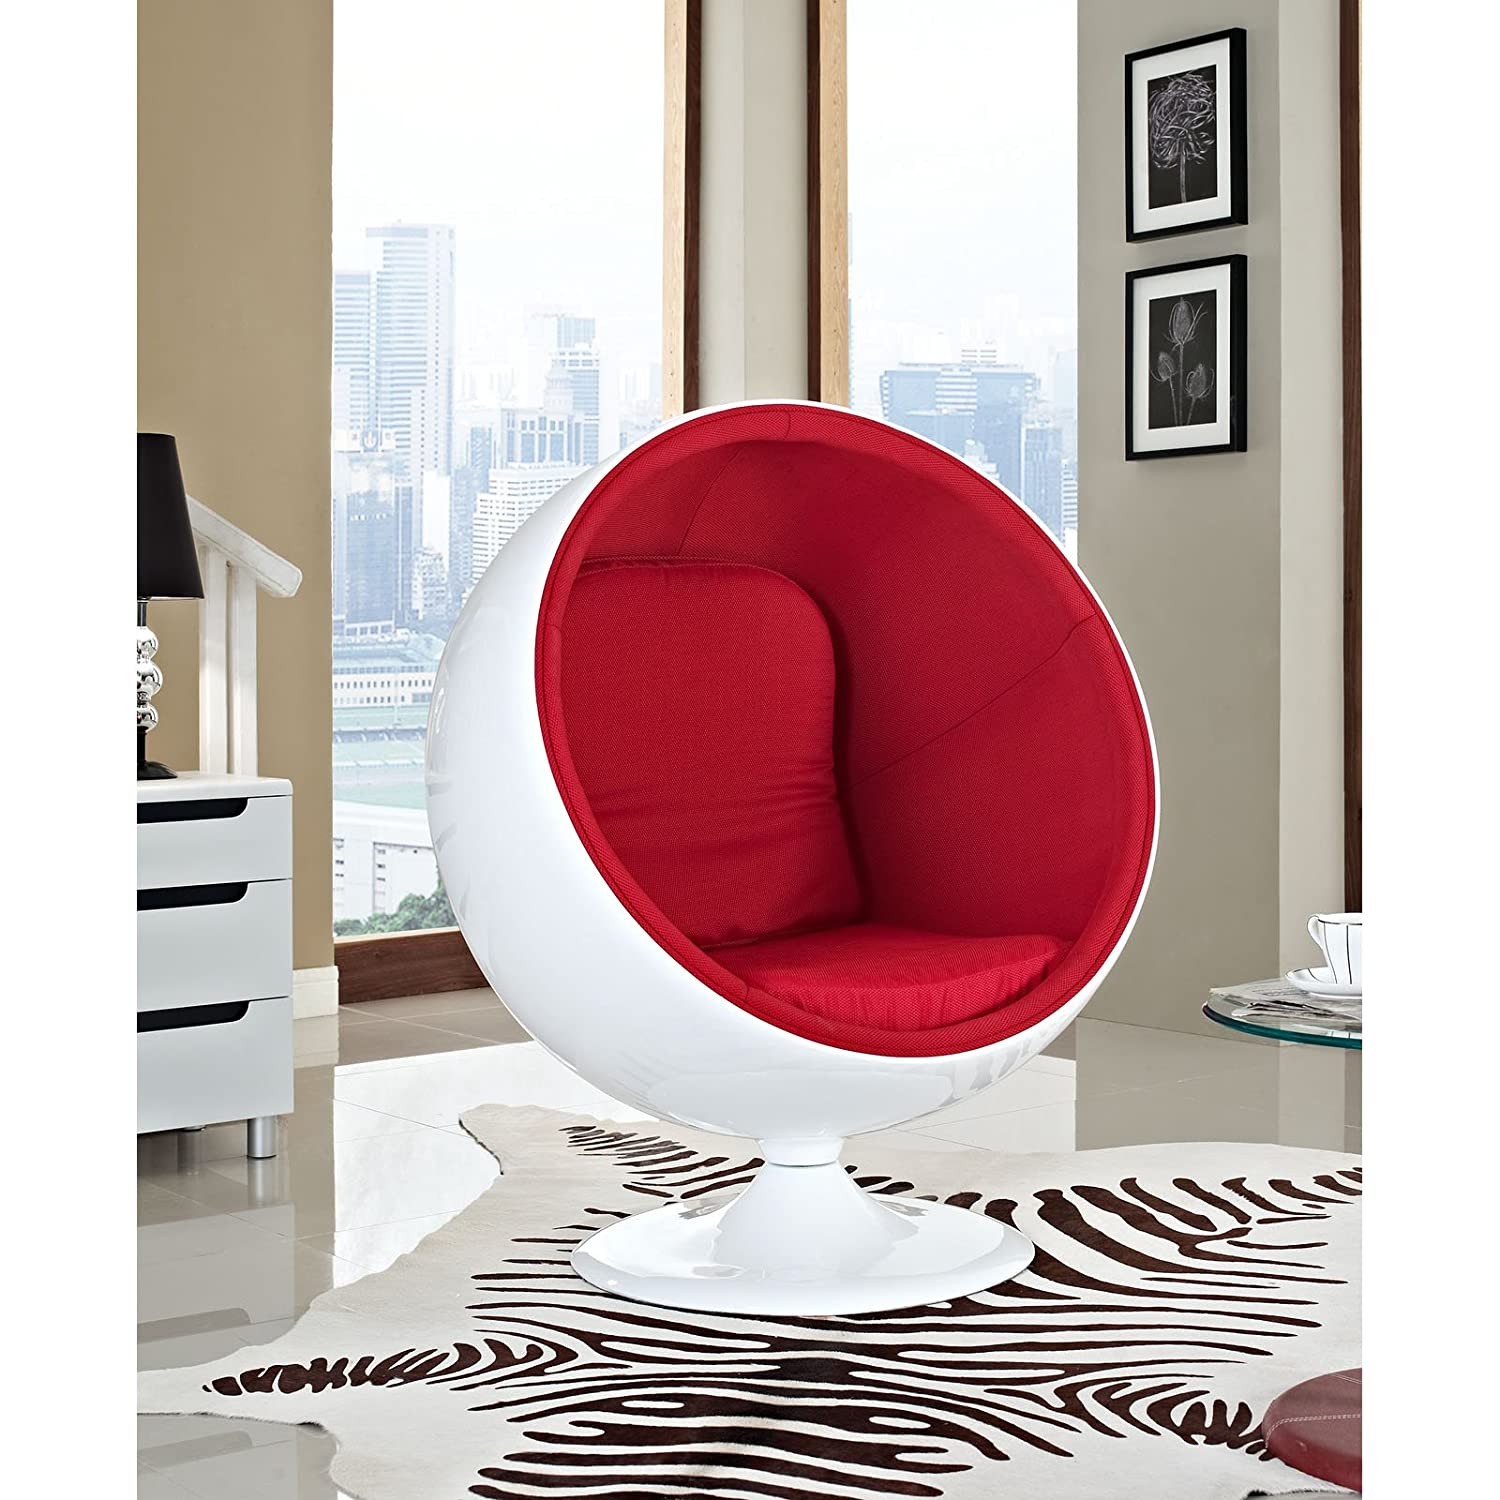 Amazon Modway Eero Aarnio Style Ball Chair in Red Kitchen